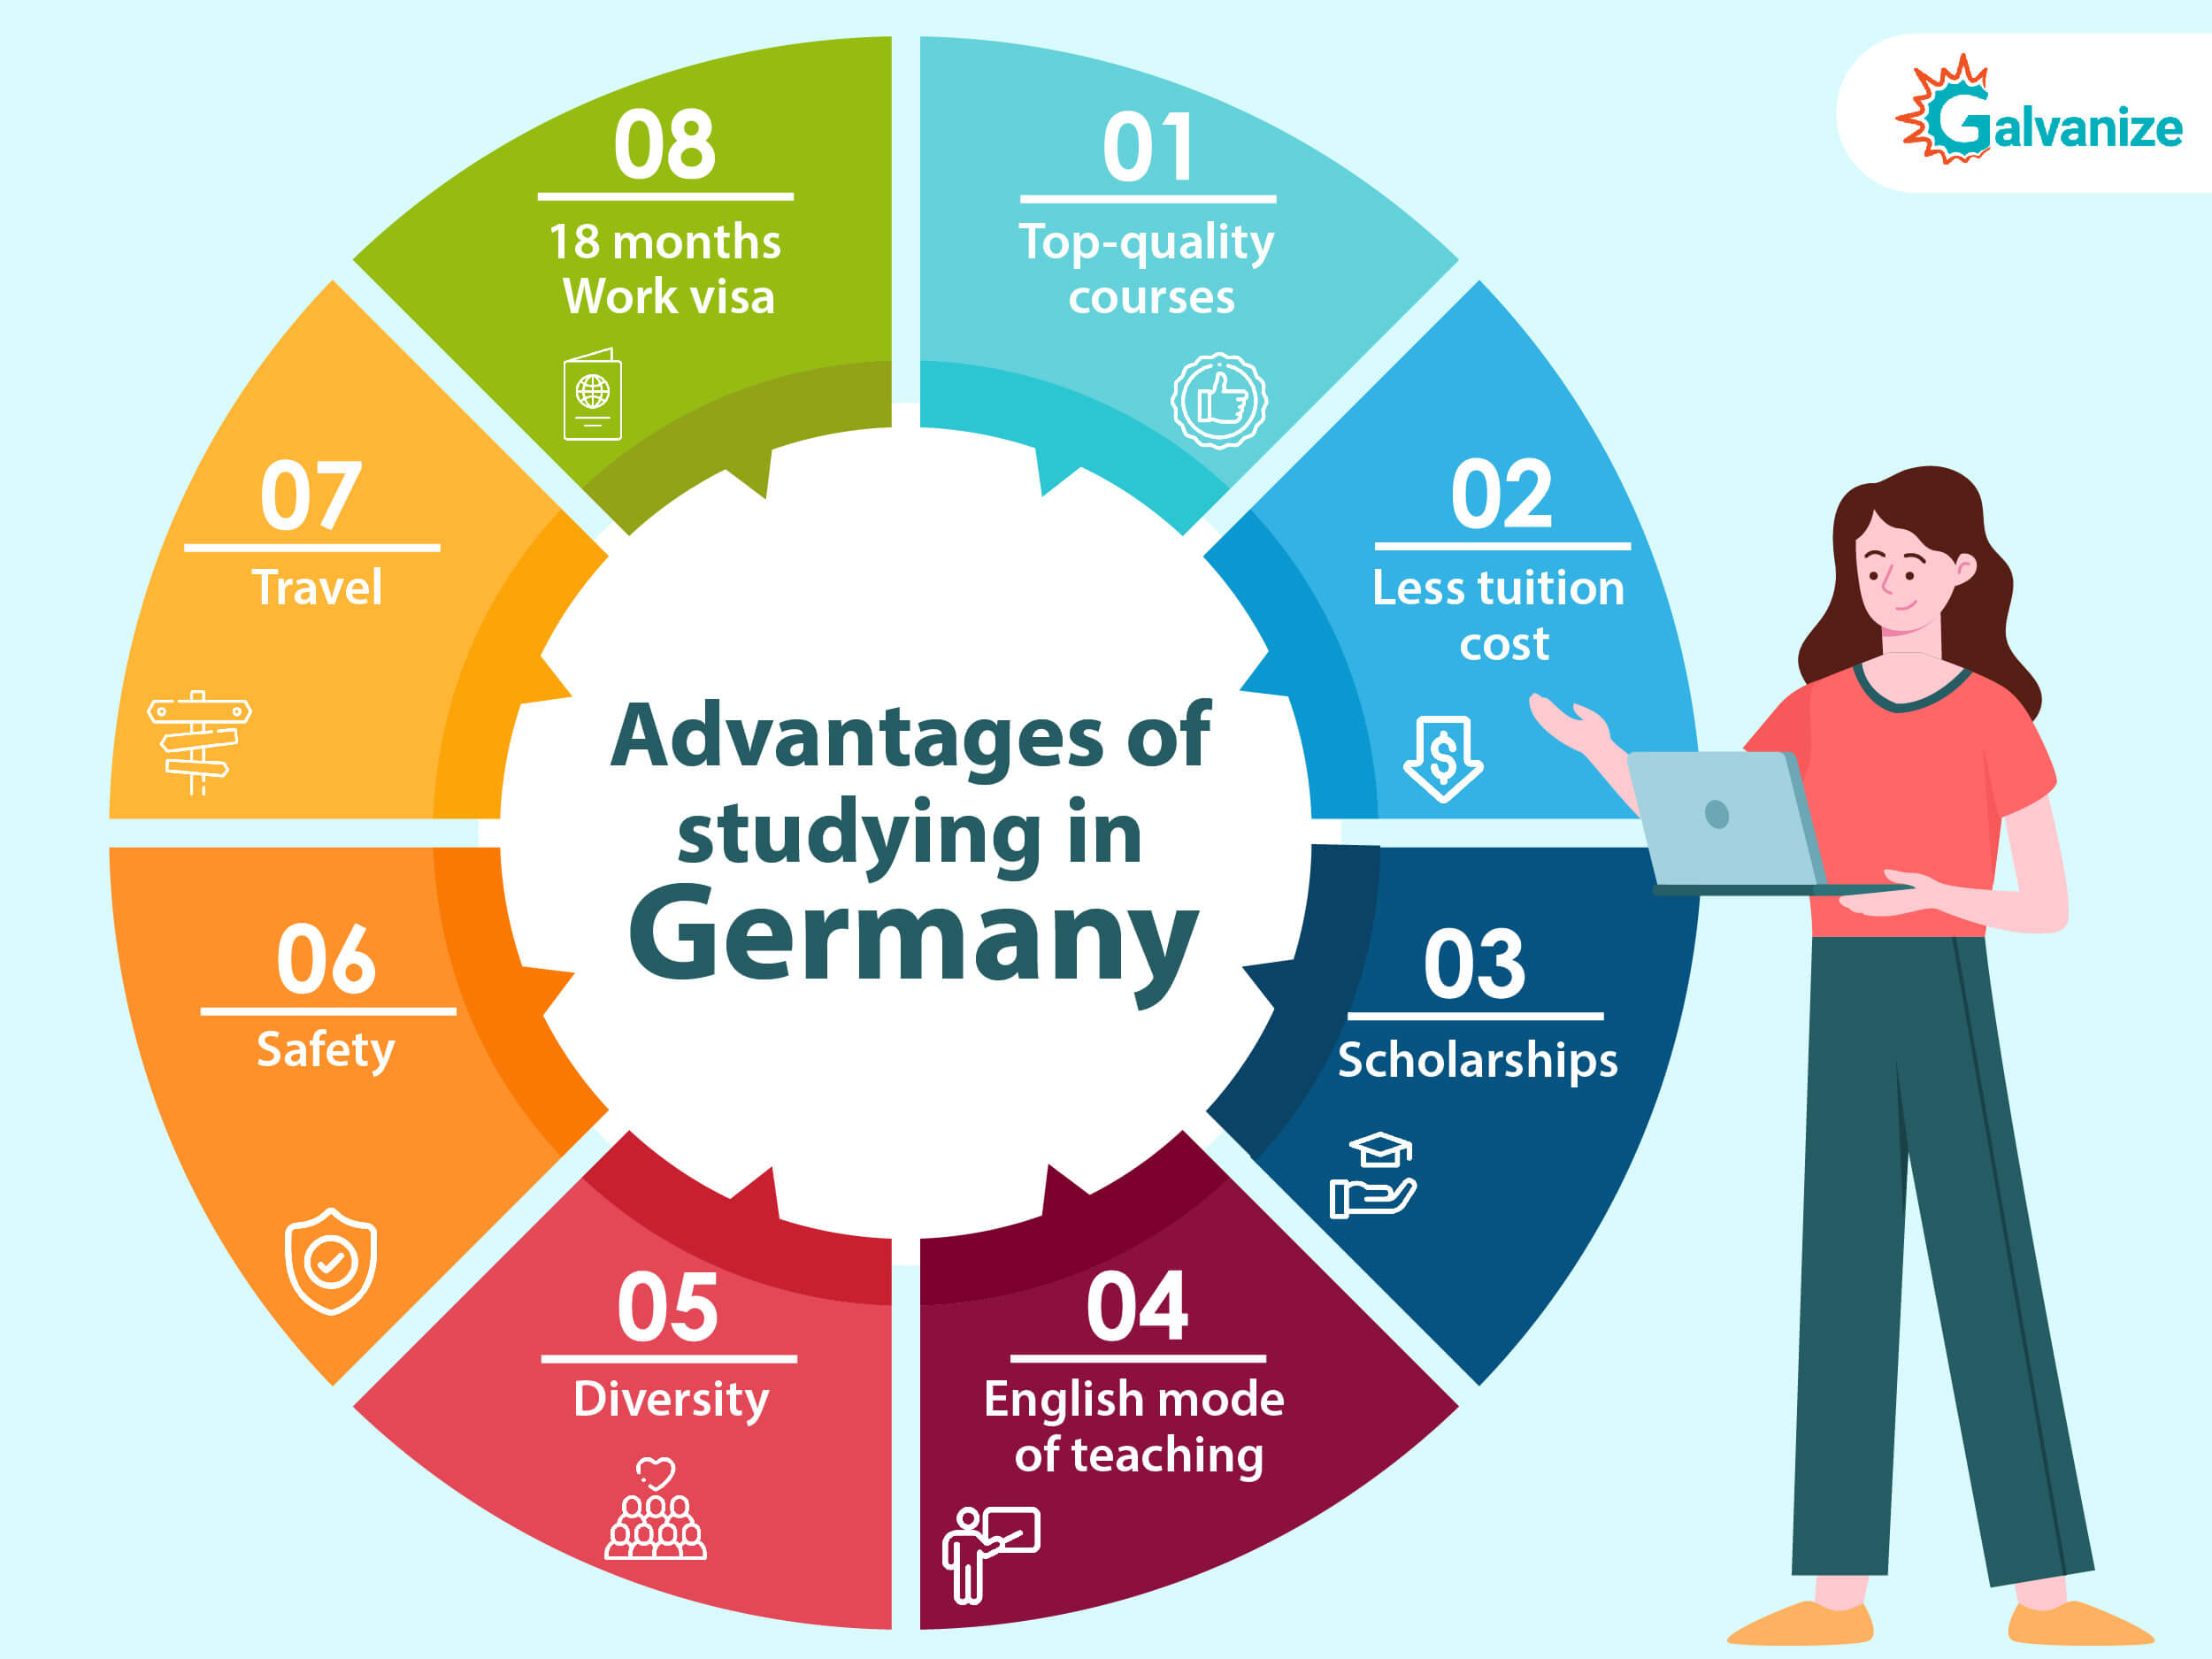 Benefits of studying in germany | Why study in germany